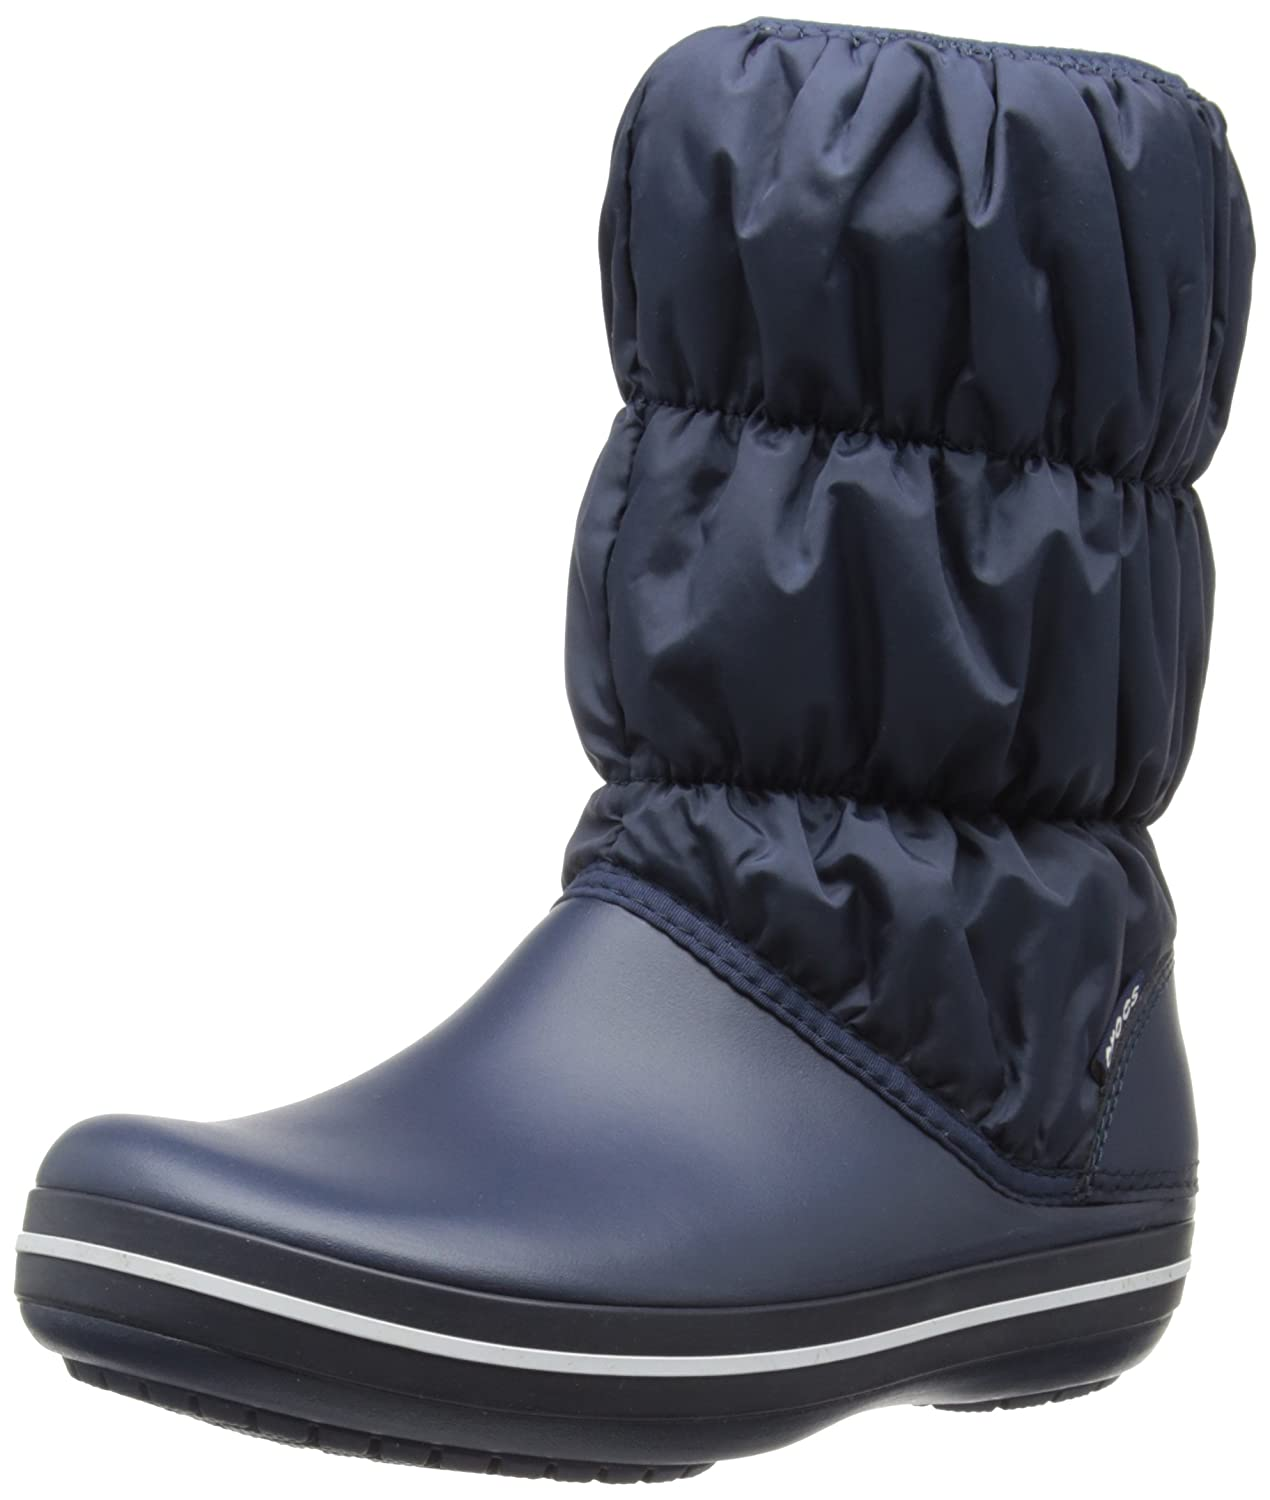 Crocs Women's Winter Puff Boot B007PY0QZI 9 B(M) US|Navy/Navy